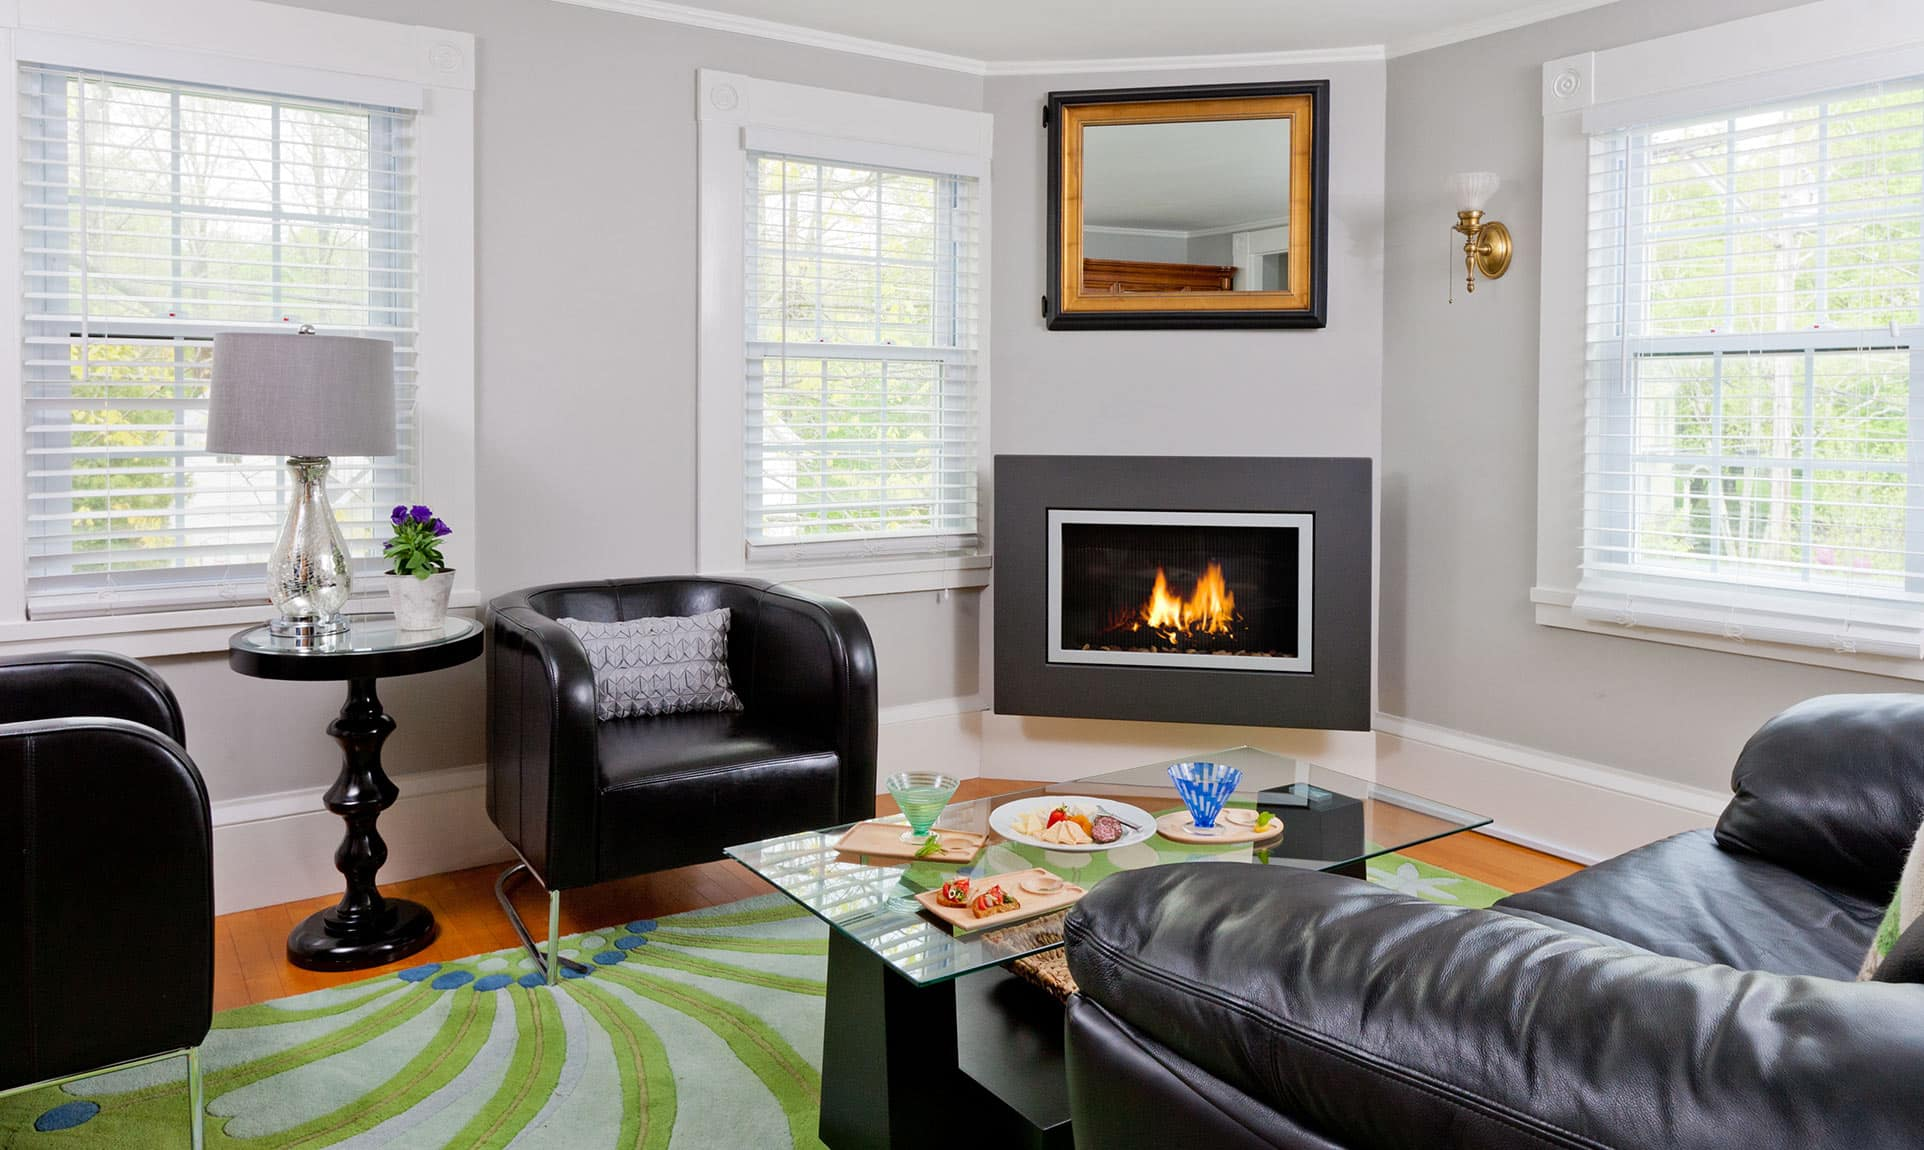 Living room with gas fireplace, couch, and leather chairs